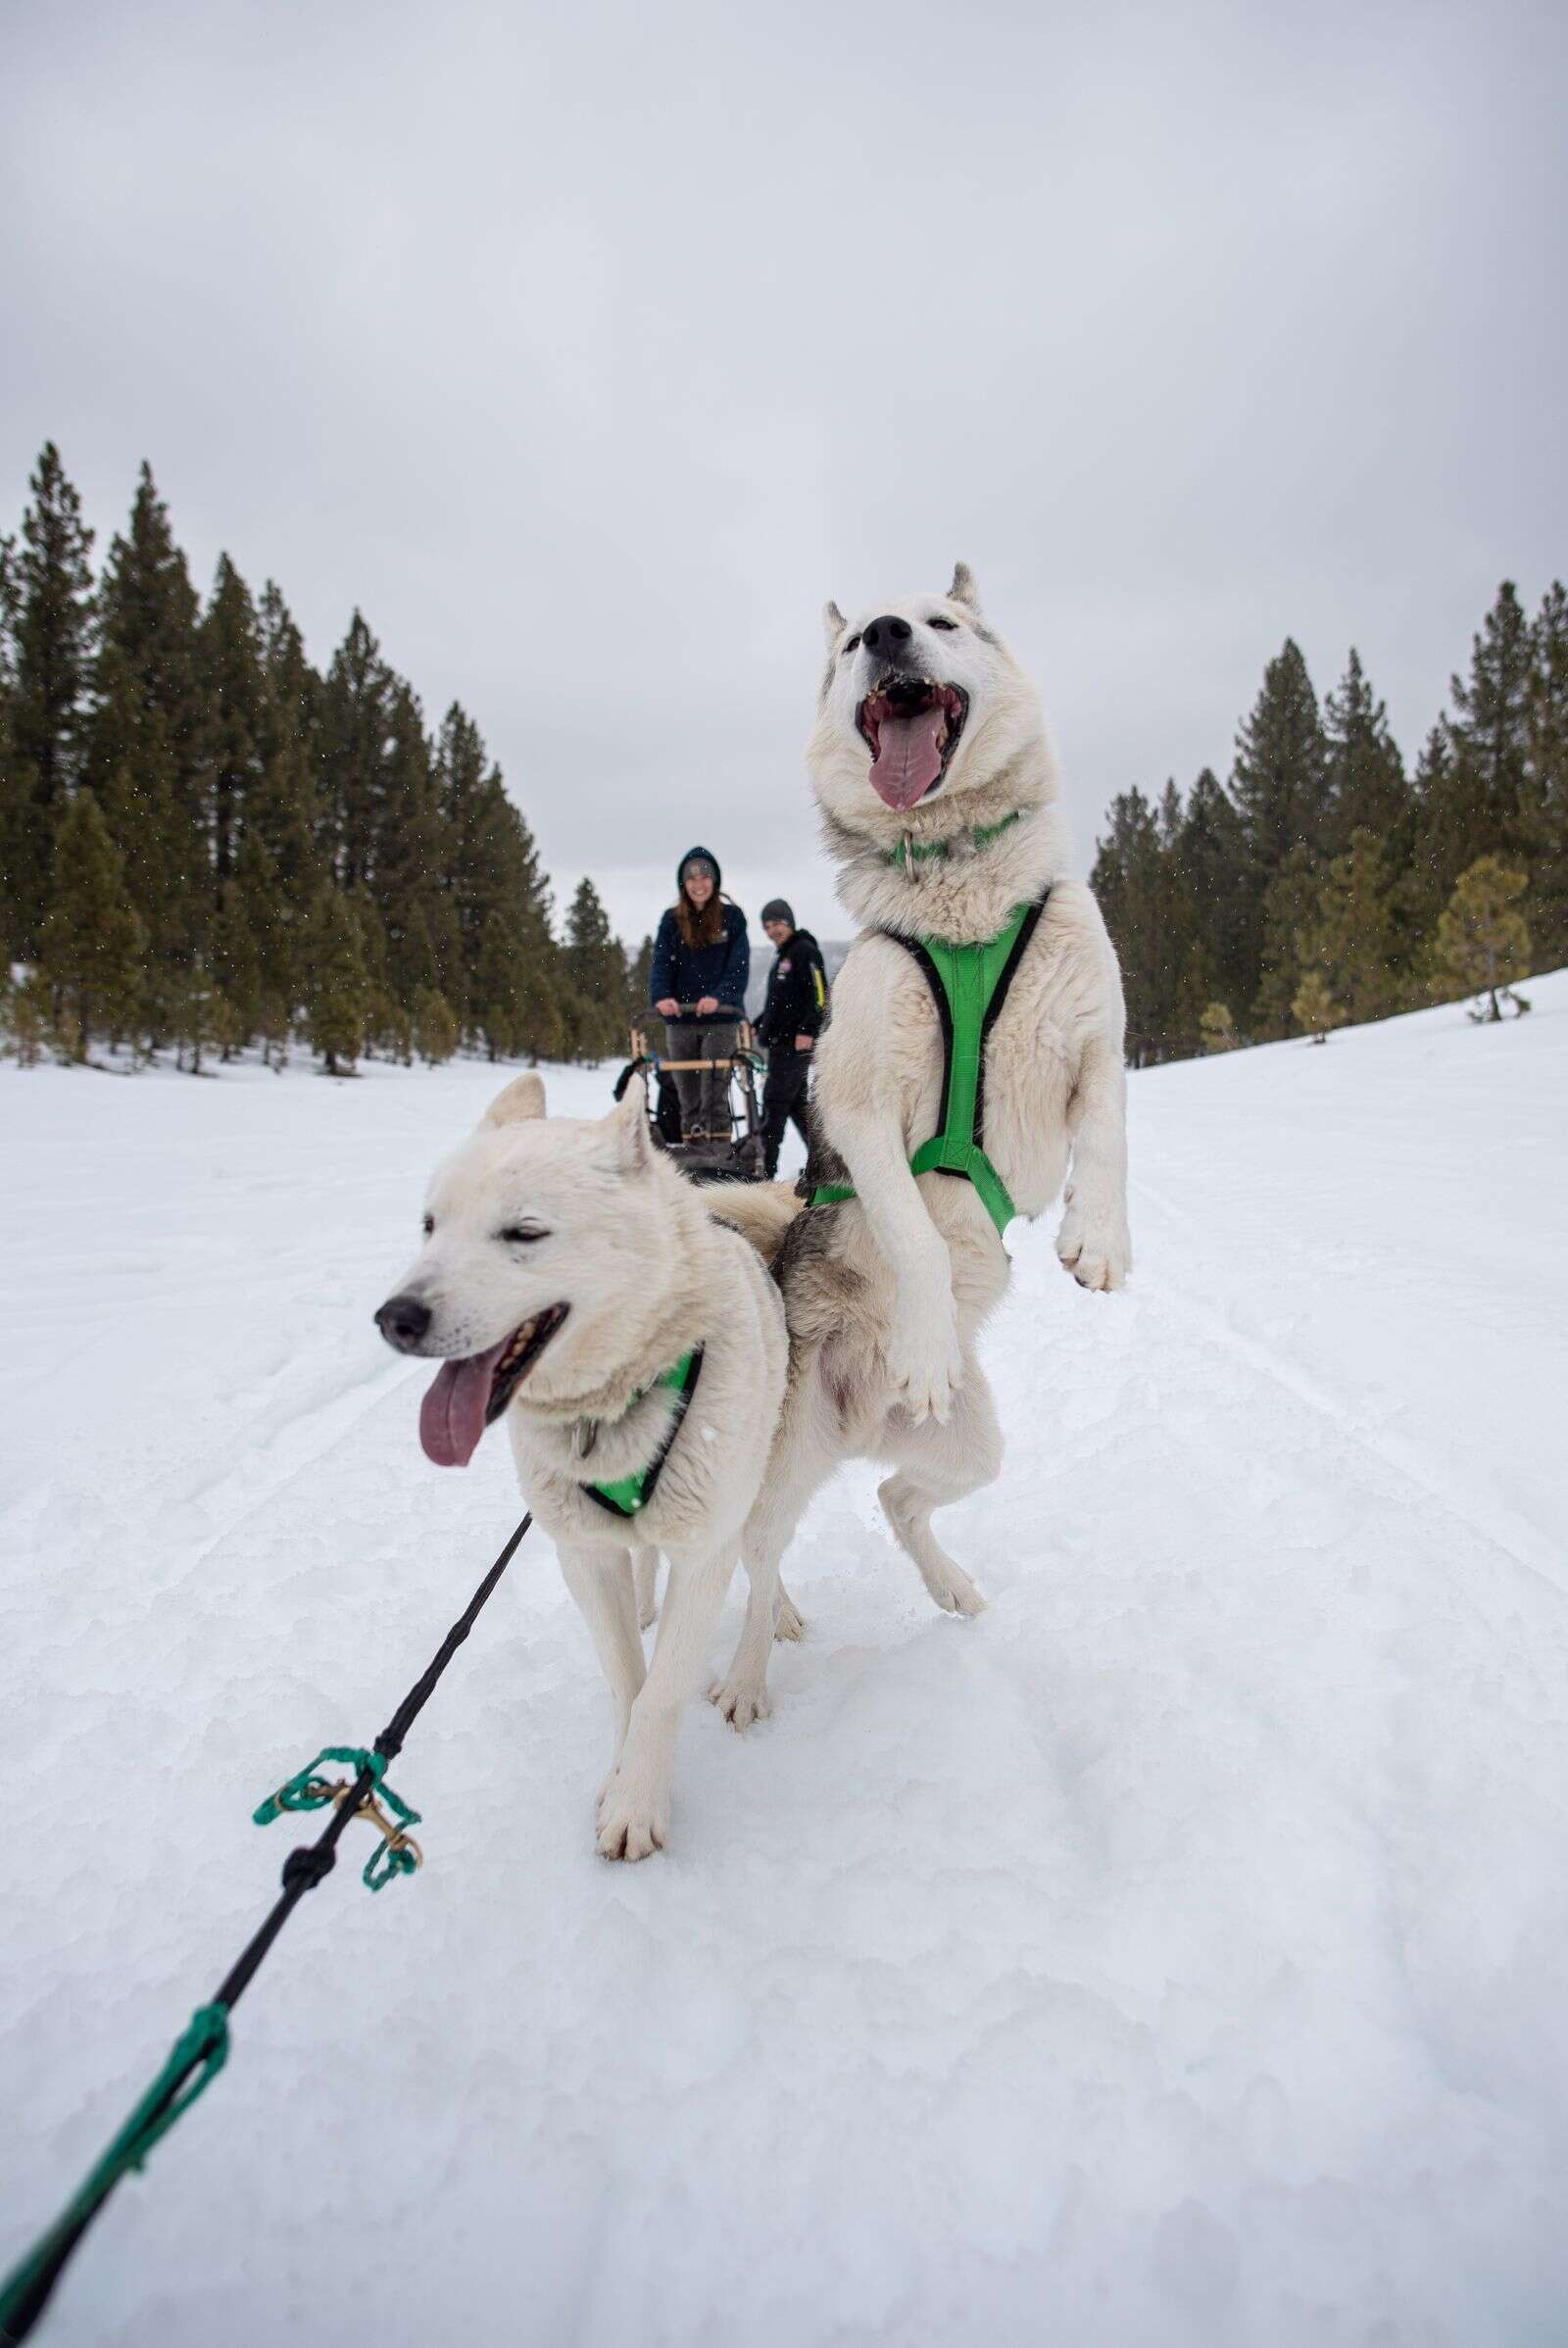 Martin's partner, Rohn Buser, grew up with sled dogs in Alaska. Now, they own 13 dogs and run the company Sierra Husky Tours.